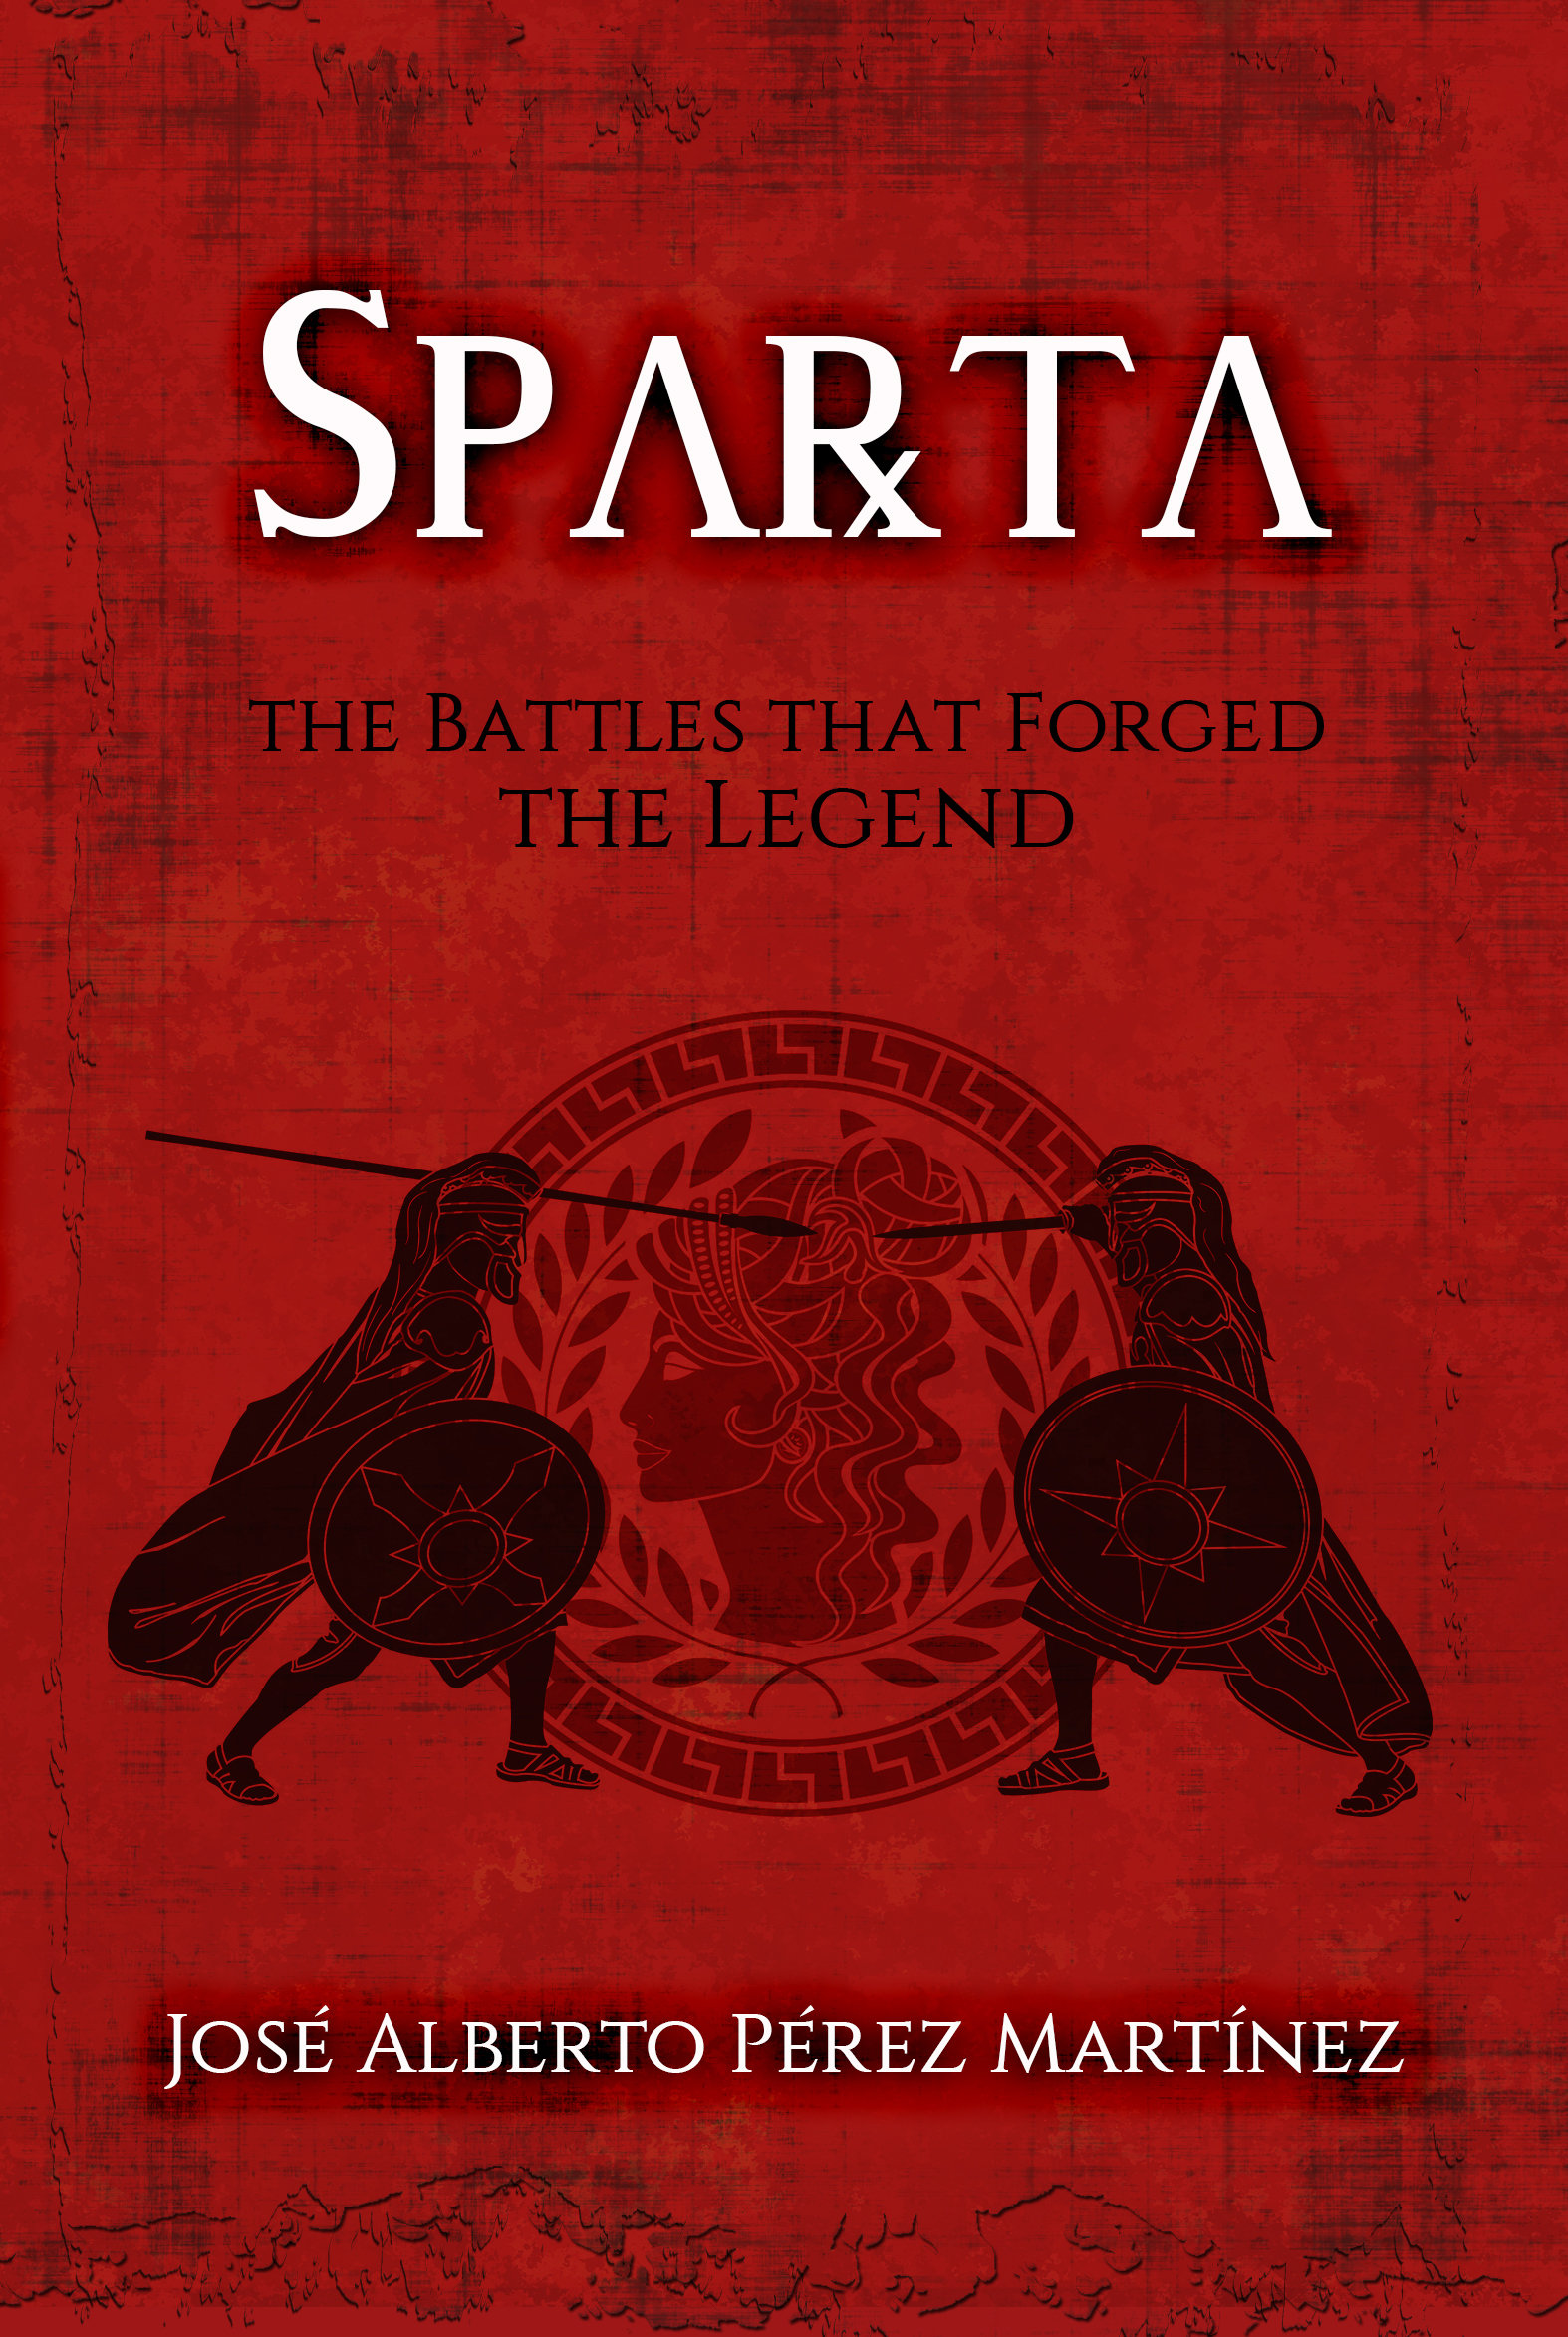 Sparta. The Battles that Forged the Legend 00010